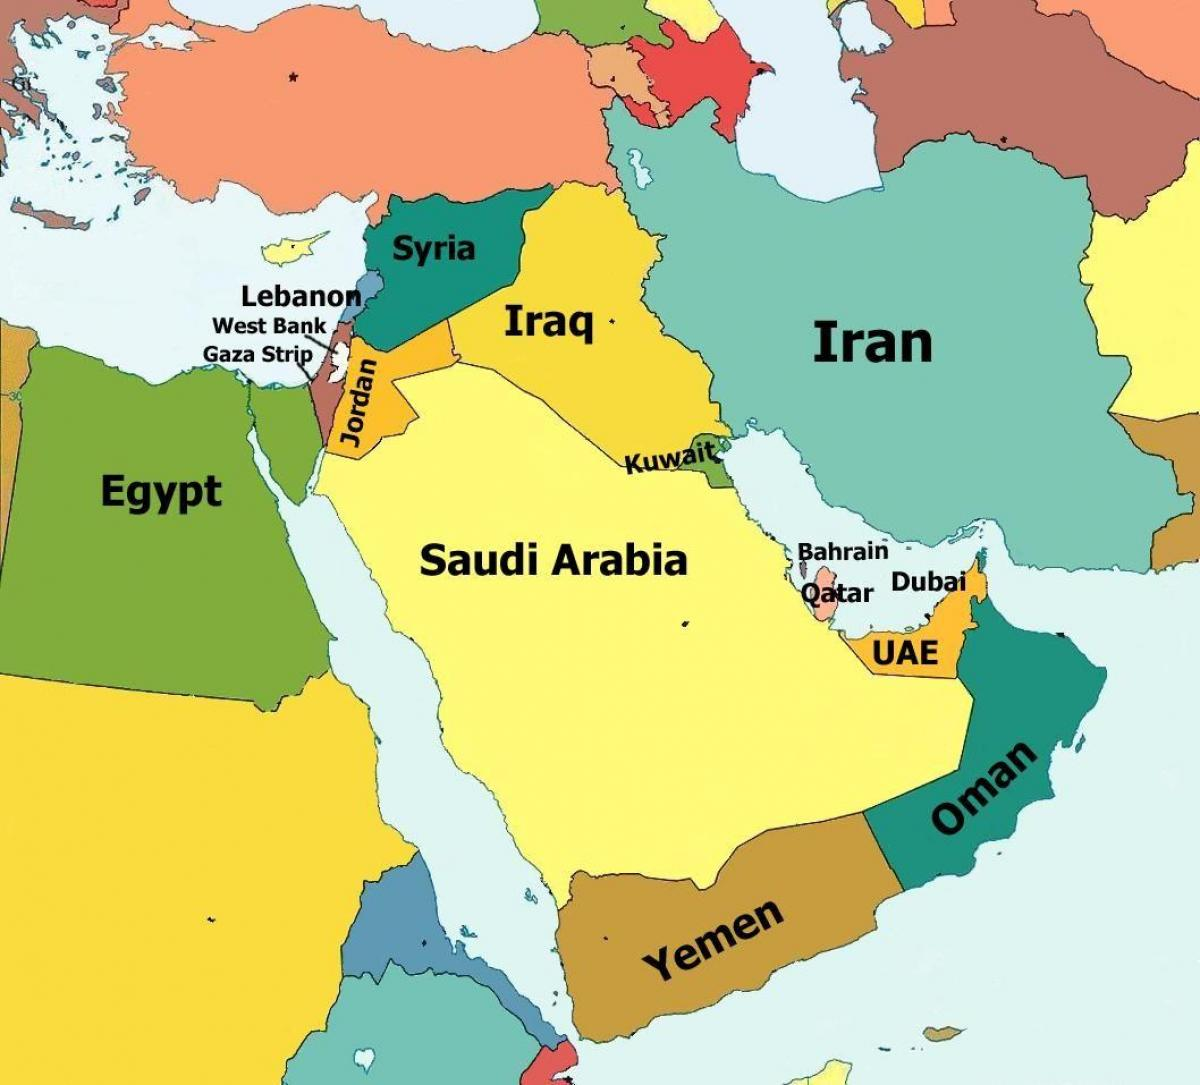 Iran on world map stock edmonton canada map goole map map iran and surrounding countries free wallpaper for maps full maps bahrain country map map iran and surrounding countries iran on world map stock gumiabroncs Image collections